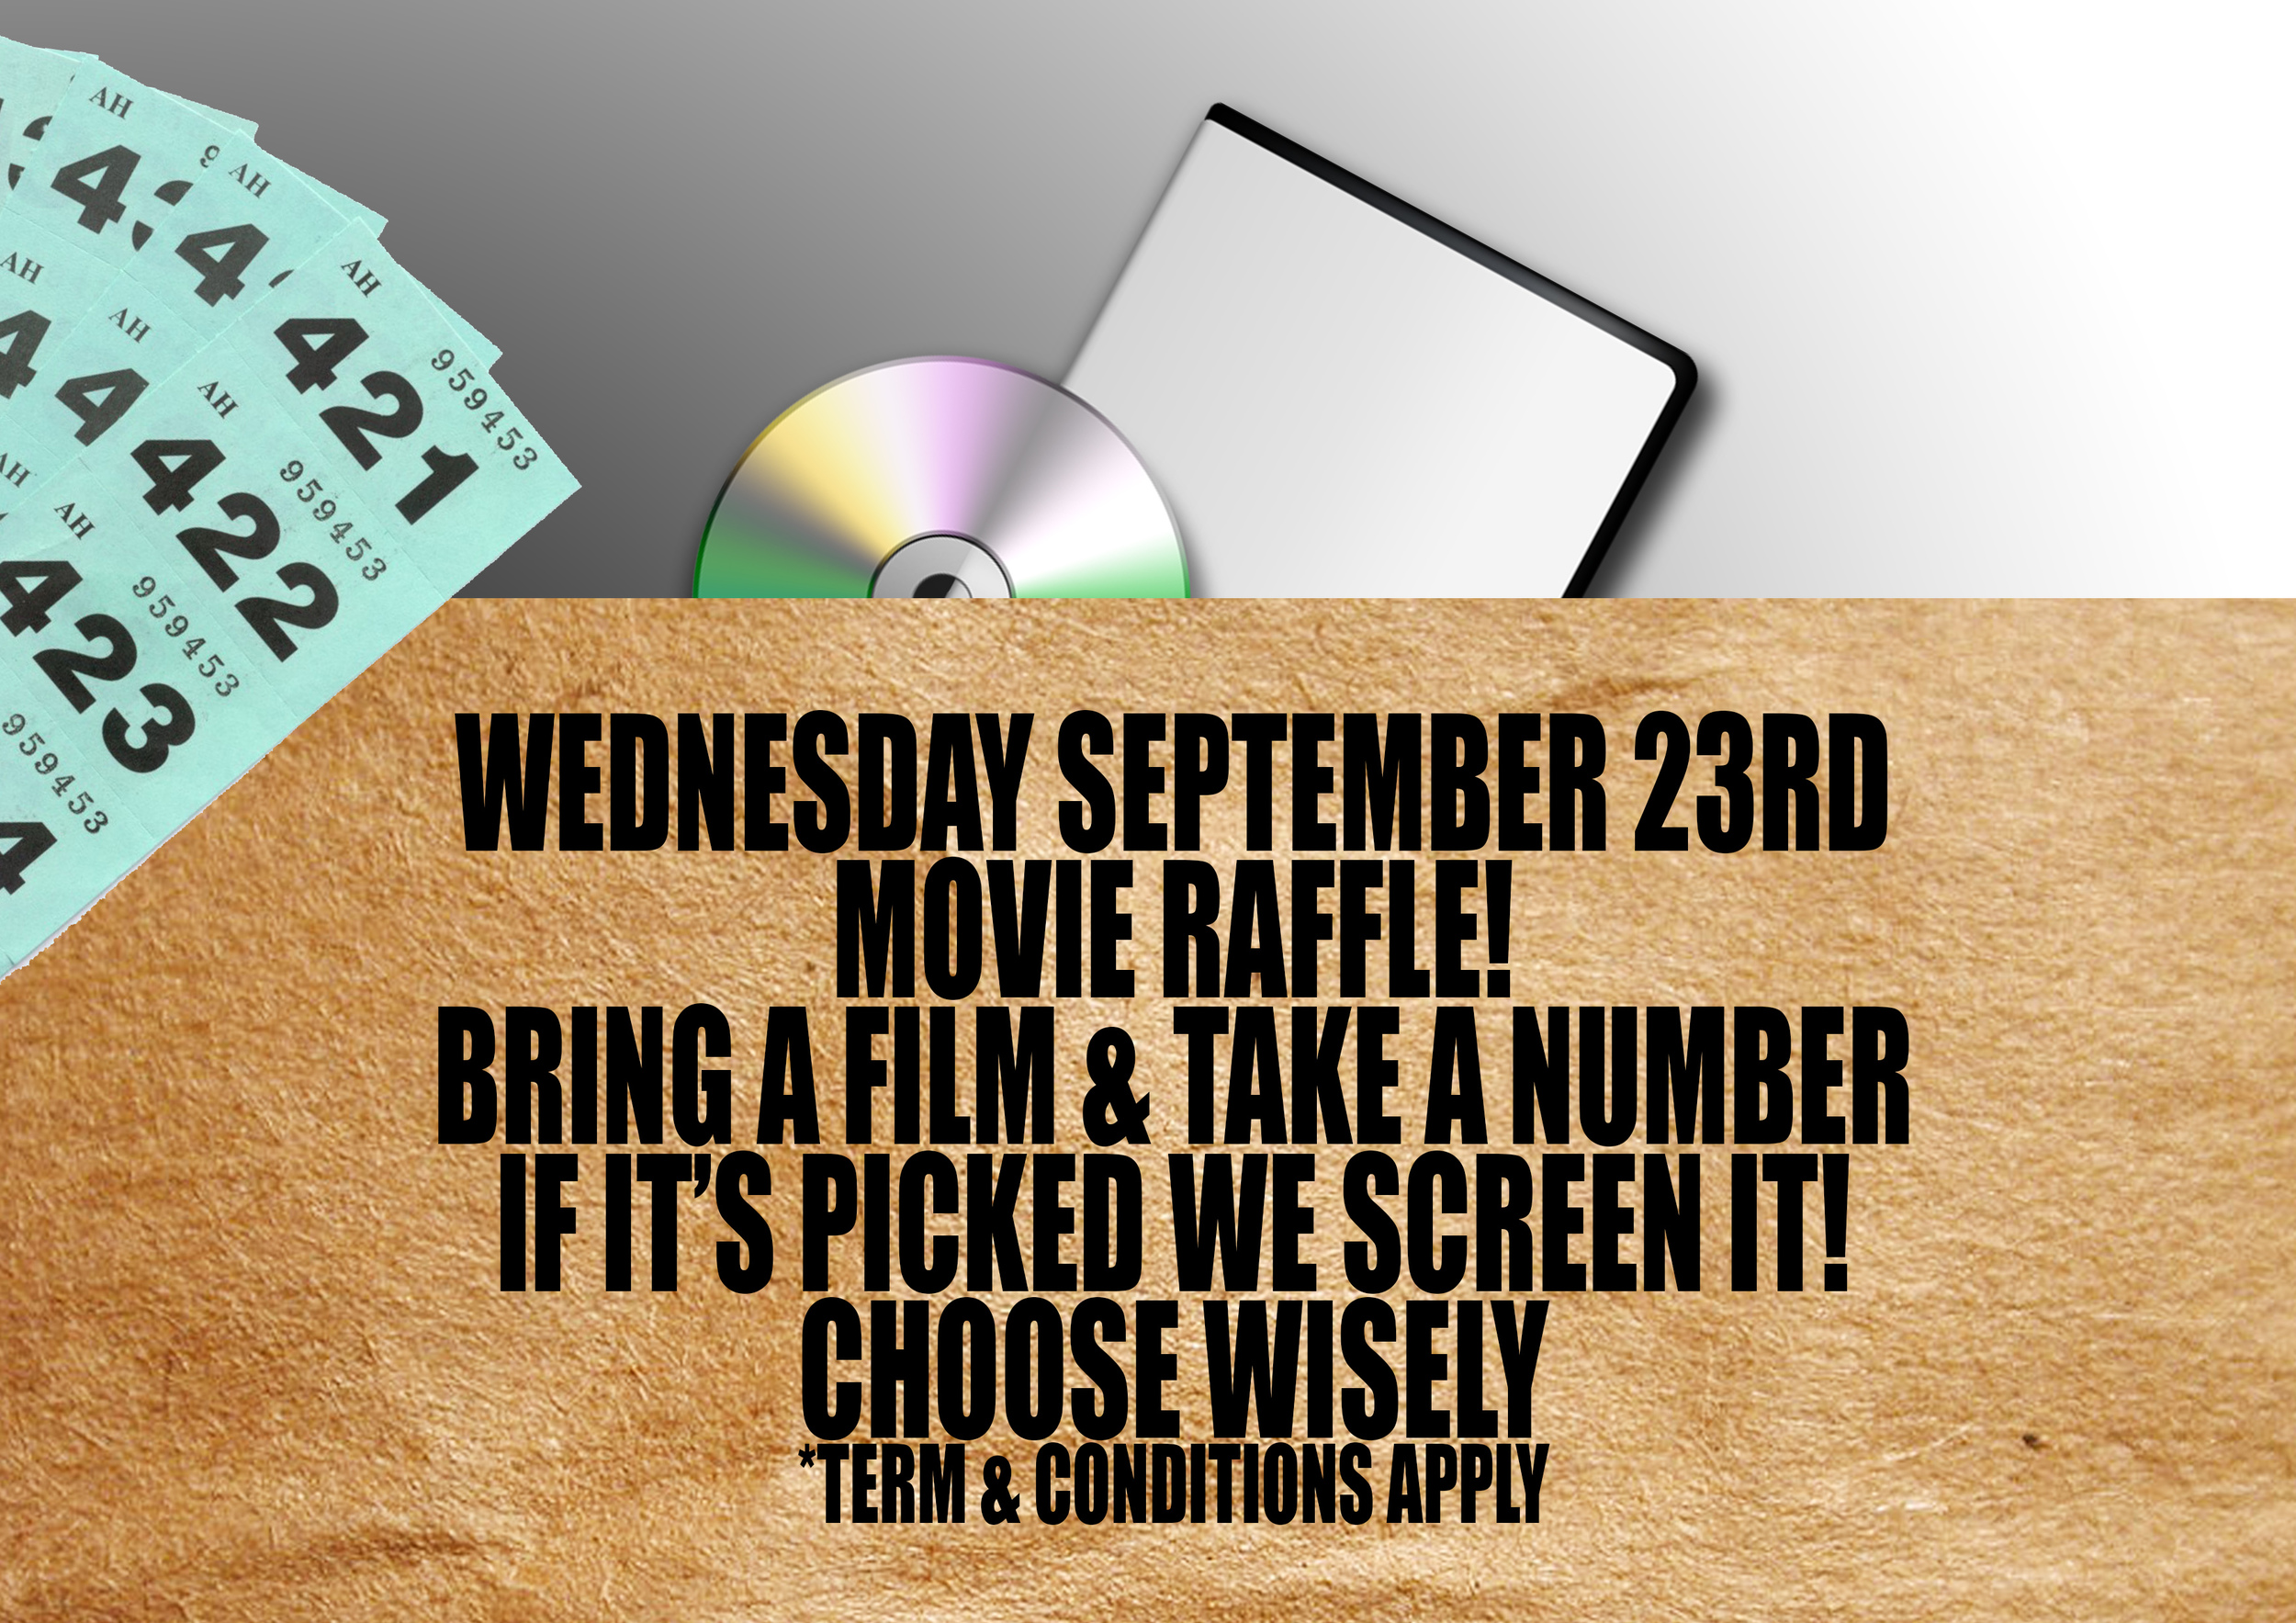 Film Club Raffle Screening